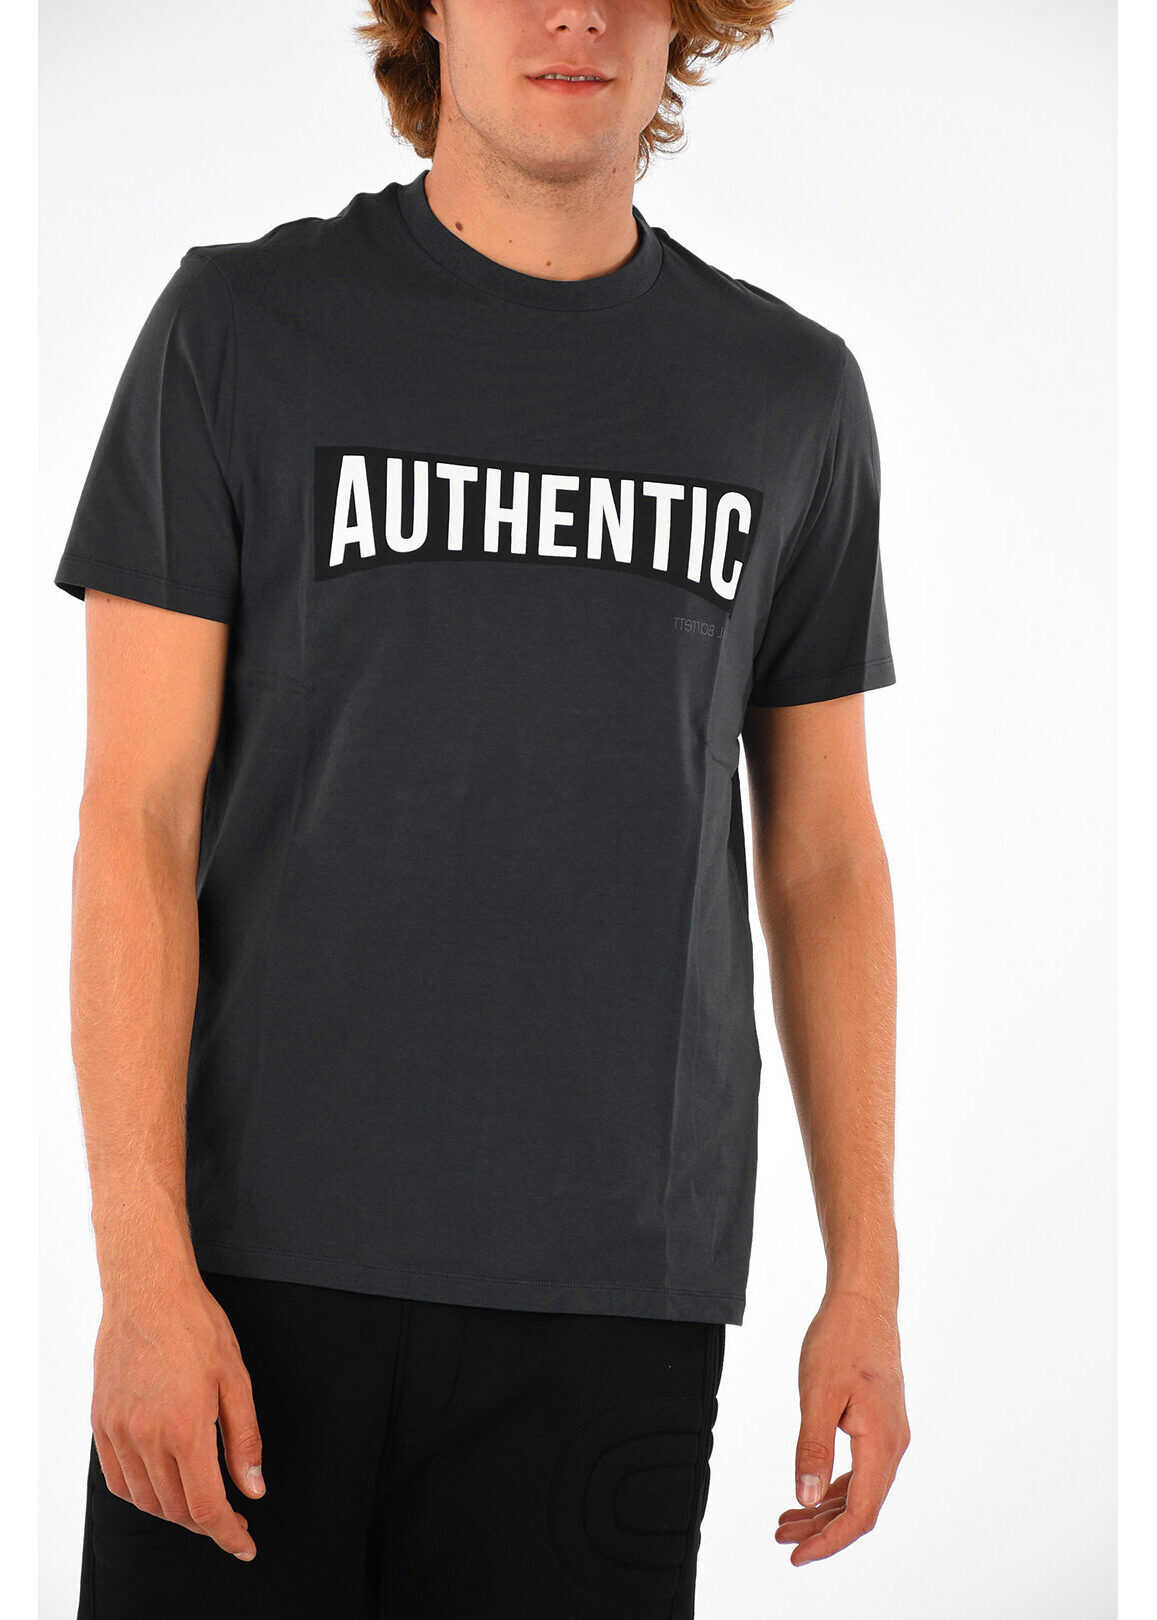 Authentic Printed T-shirt